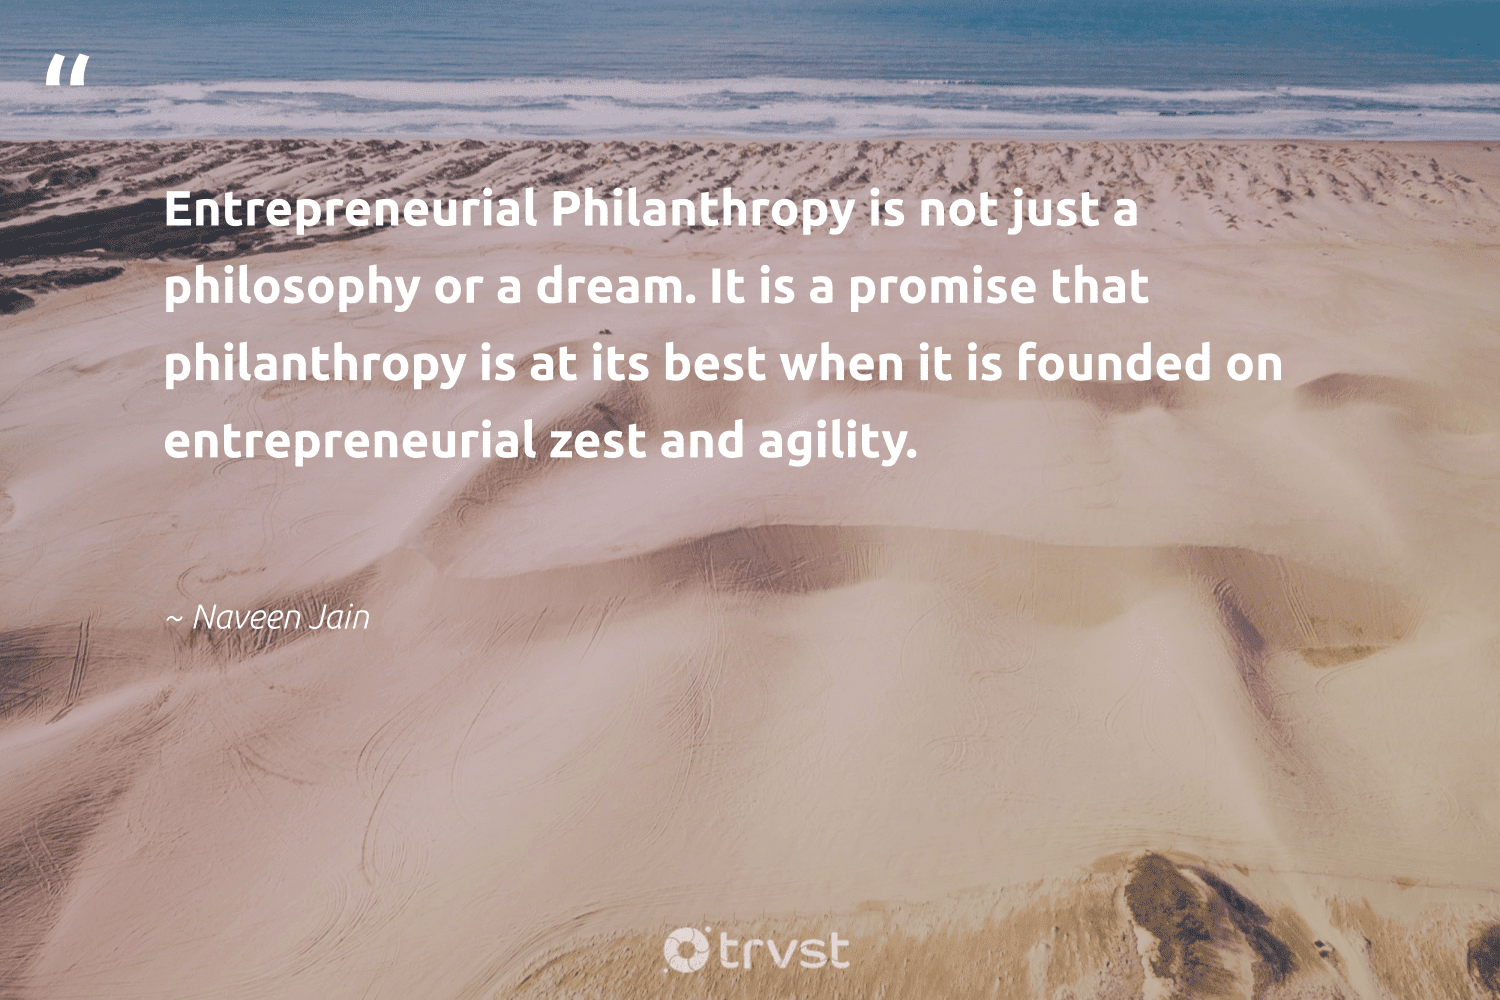 """""""Entrepreneurial Philanthropy is not just a philosophy or a dream. It is a promise that philanthropy is at its best when it is founded on entrepreneurial zest and agility.""""  - Naveen Jain #trvst #quotes #philanthropy #philanthropic #giveforthefuture #togetherwecan #impact #itscooltobekind #changemakers #socialchange #collectiveaction #thinkgreen"""